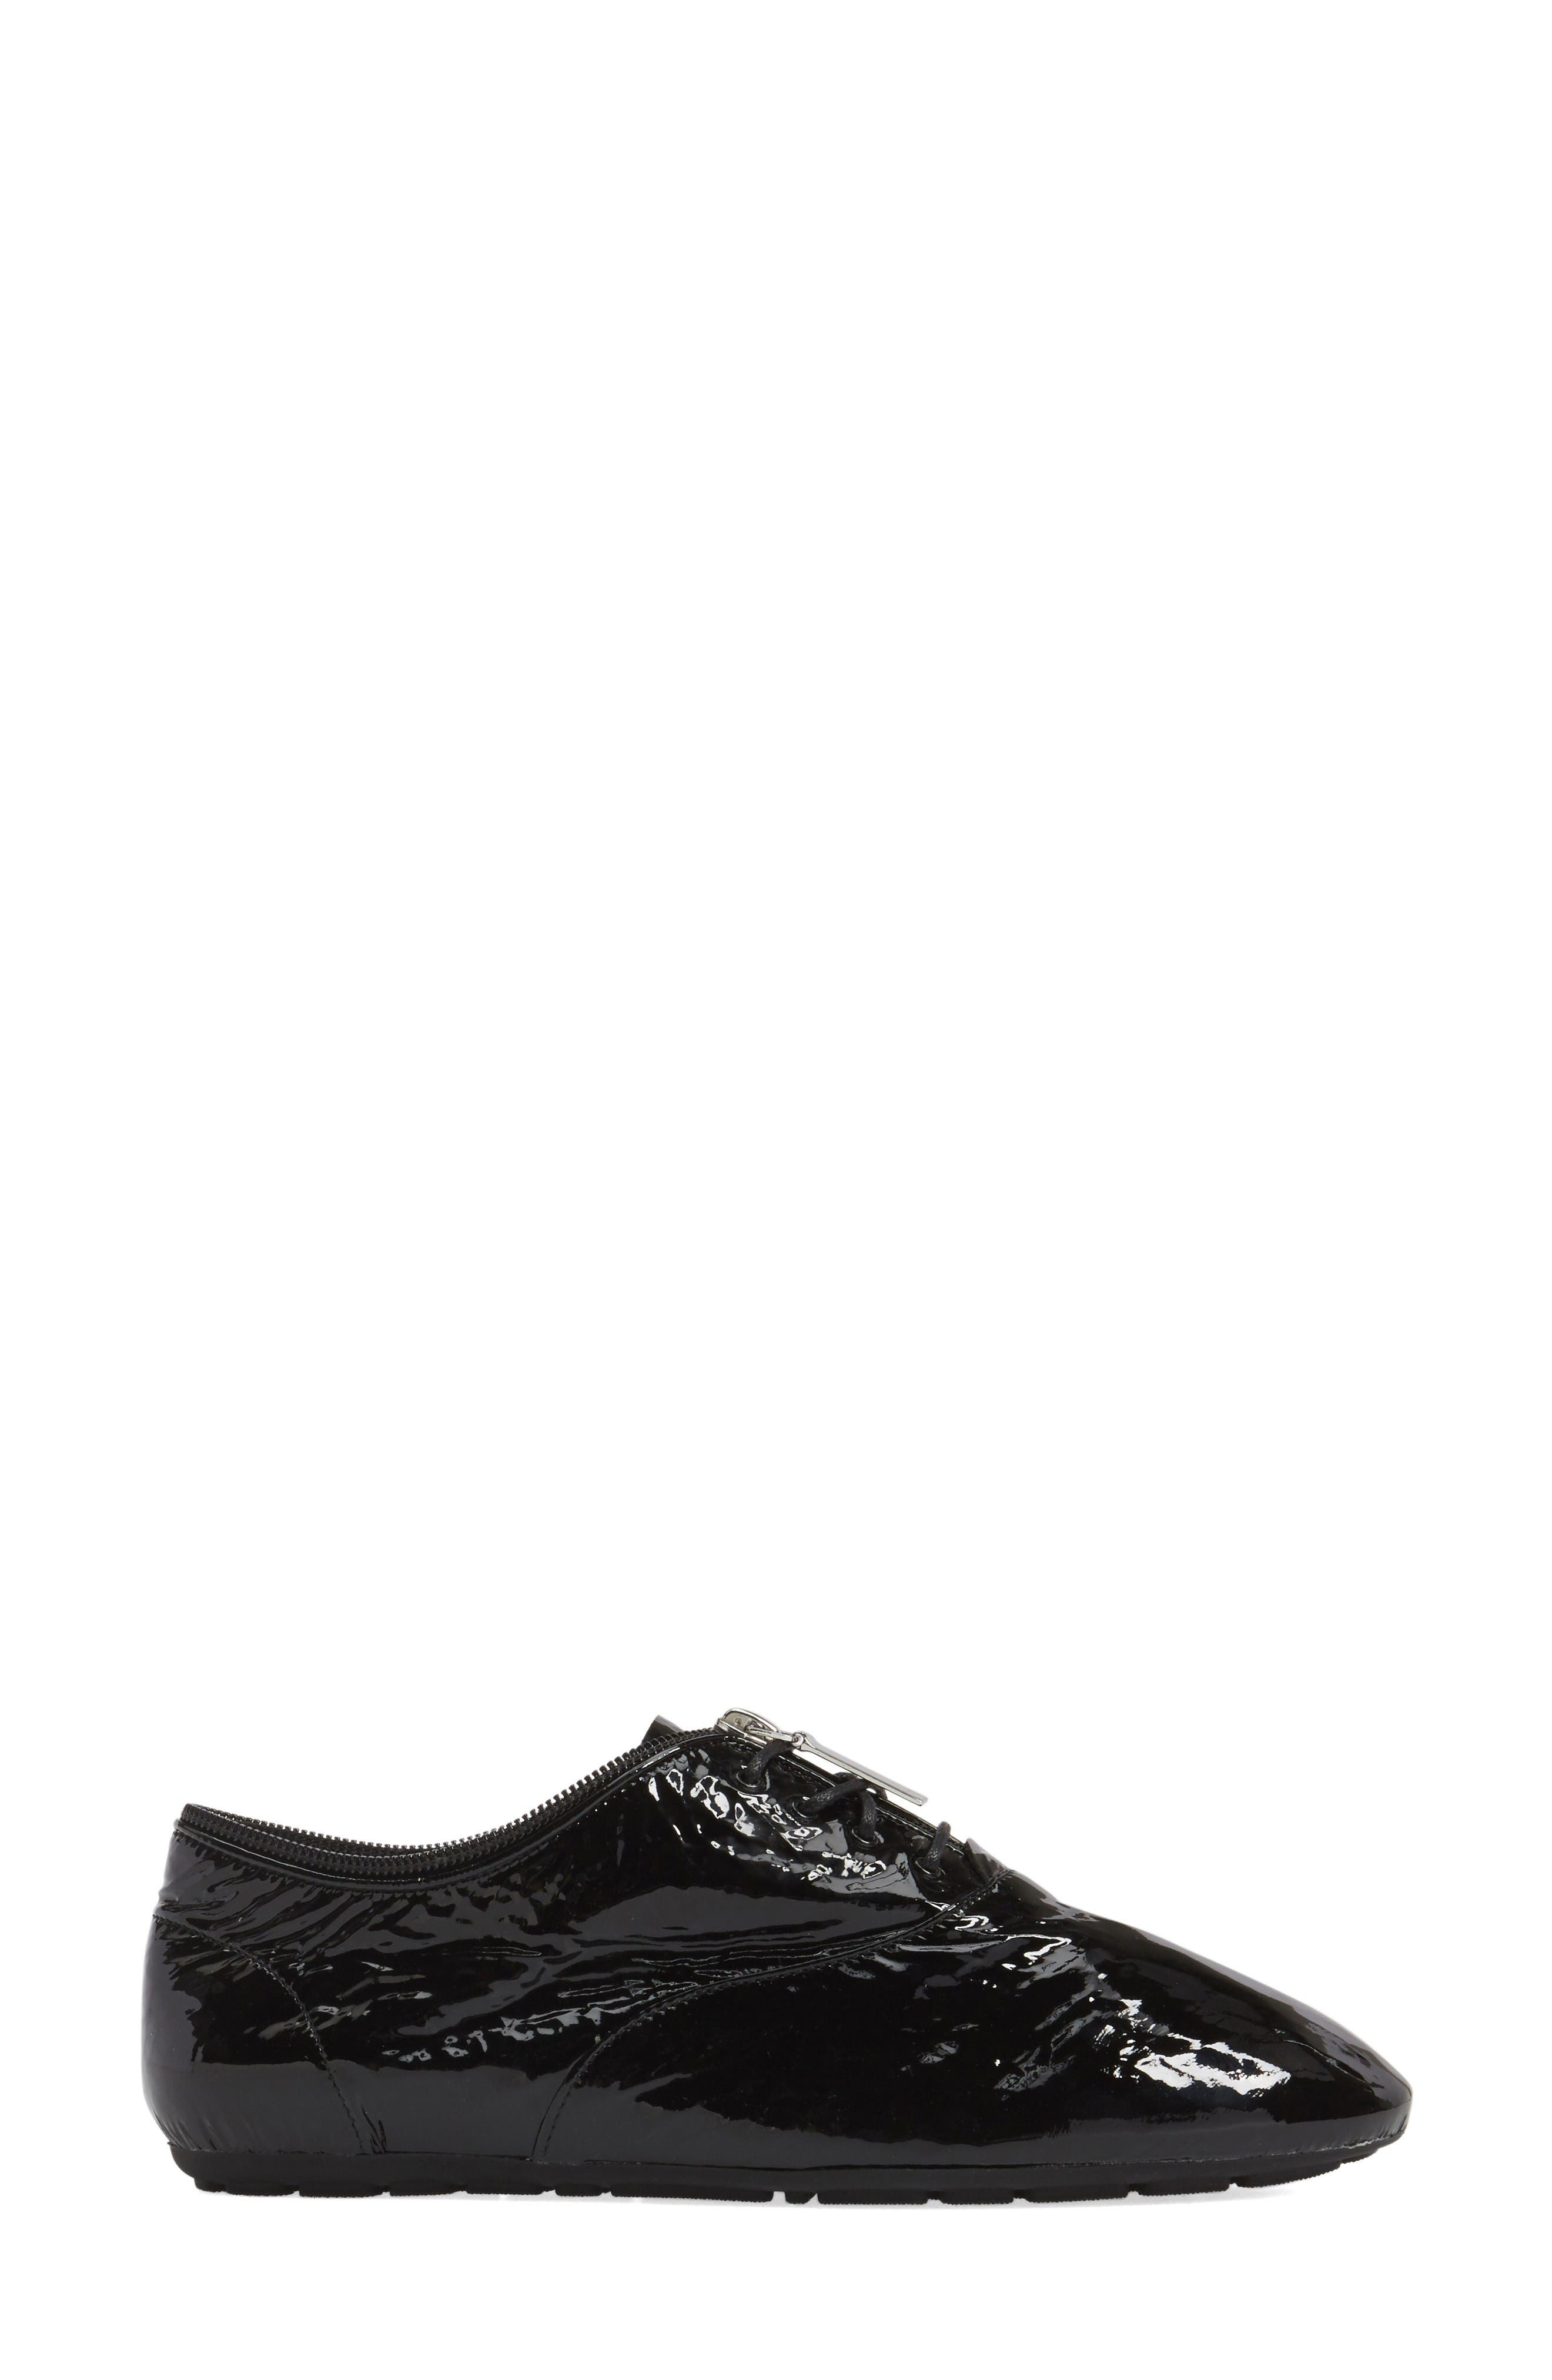 Alternate Image 3  - Saint Laurent Verneuil Flat (Women)